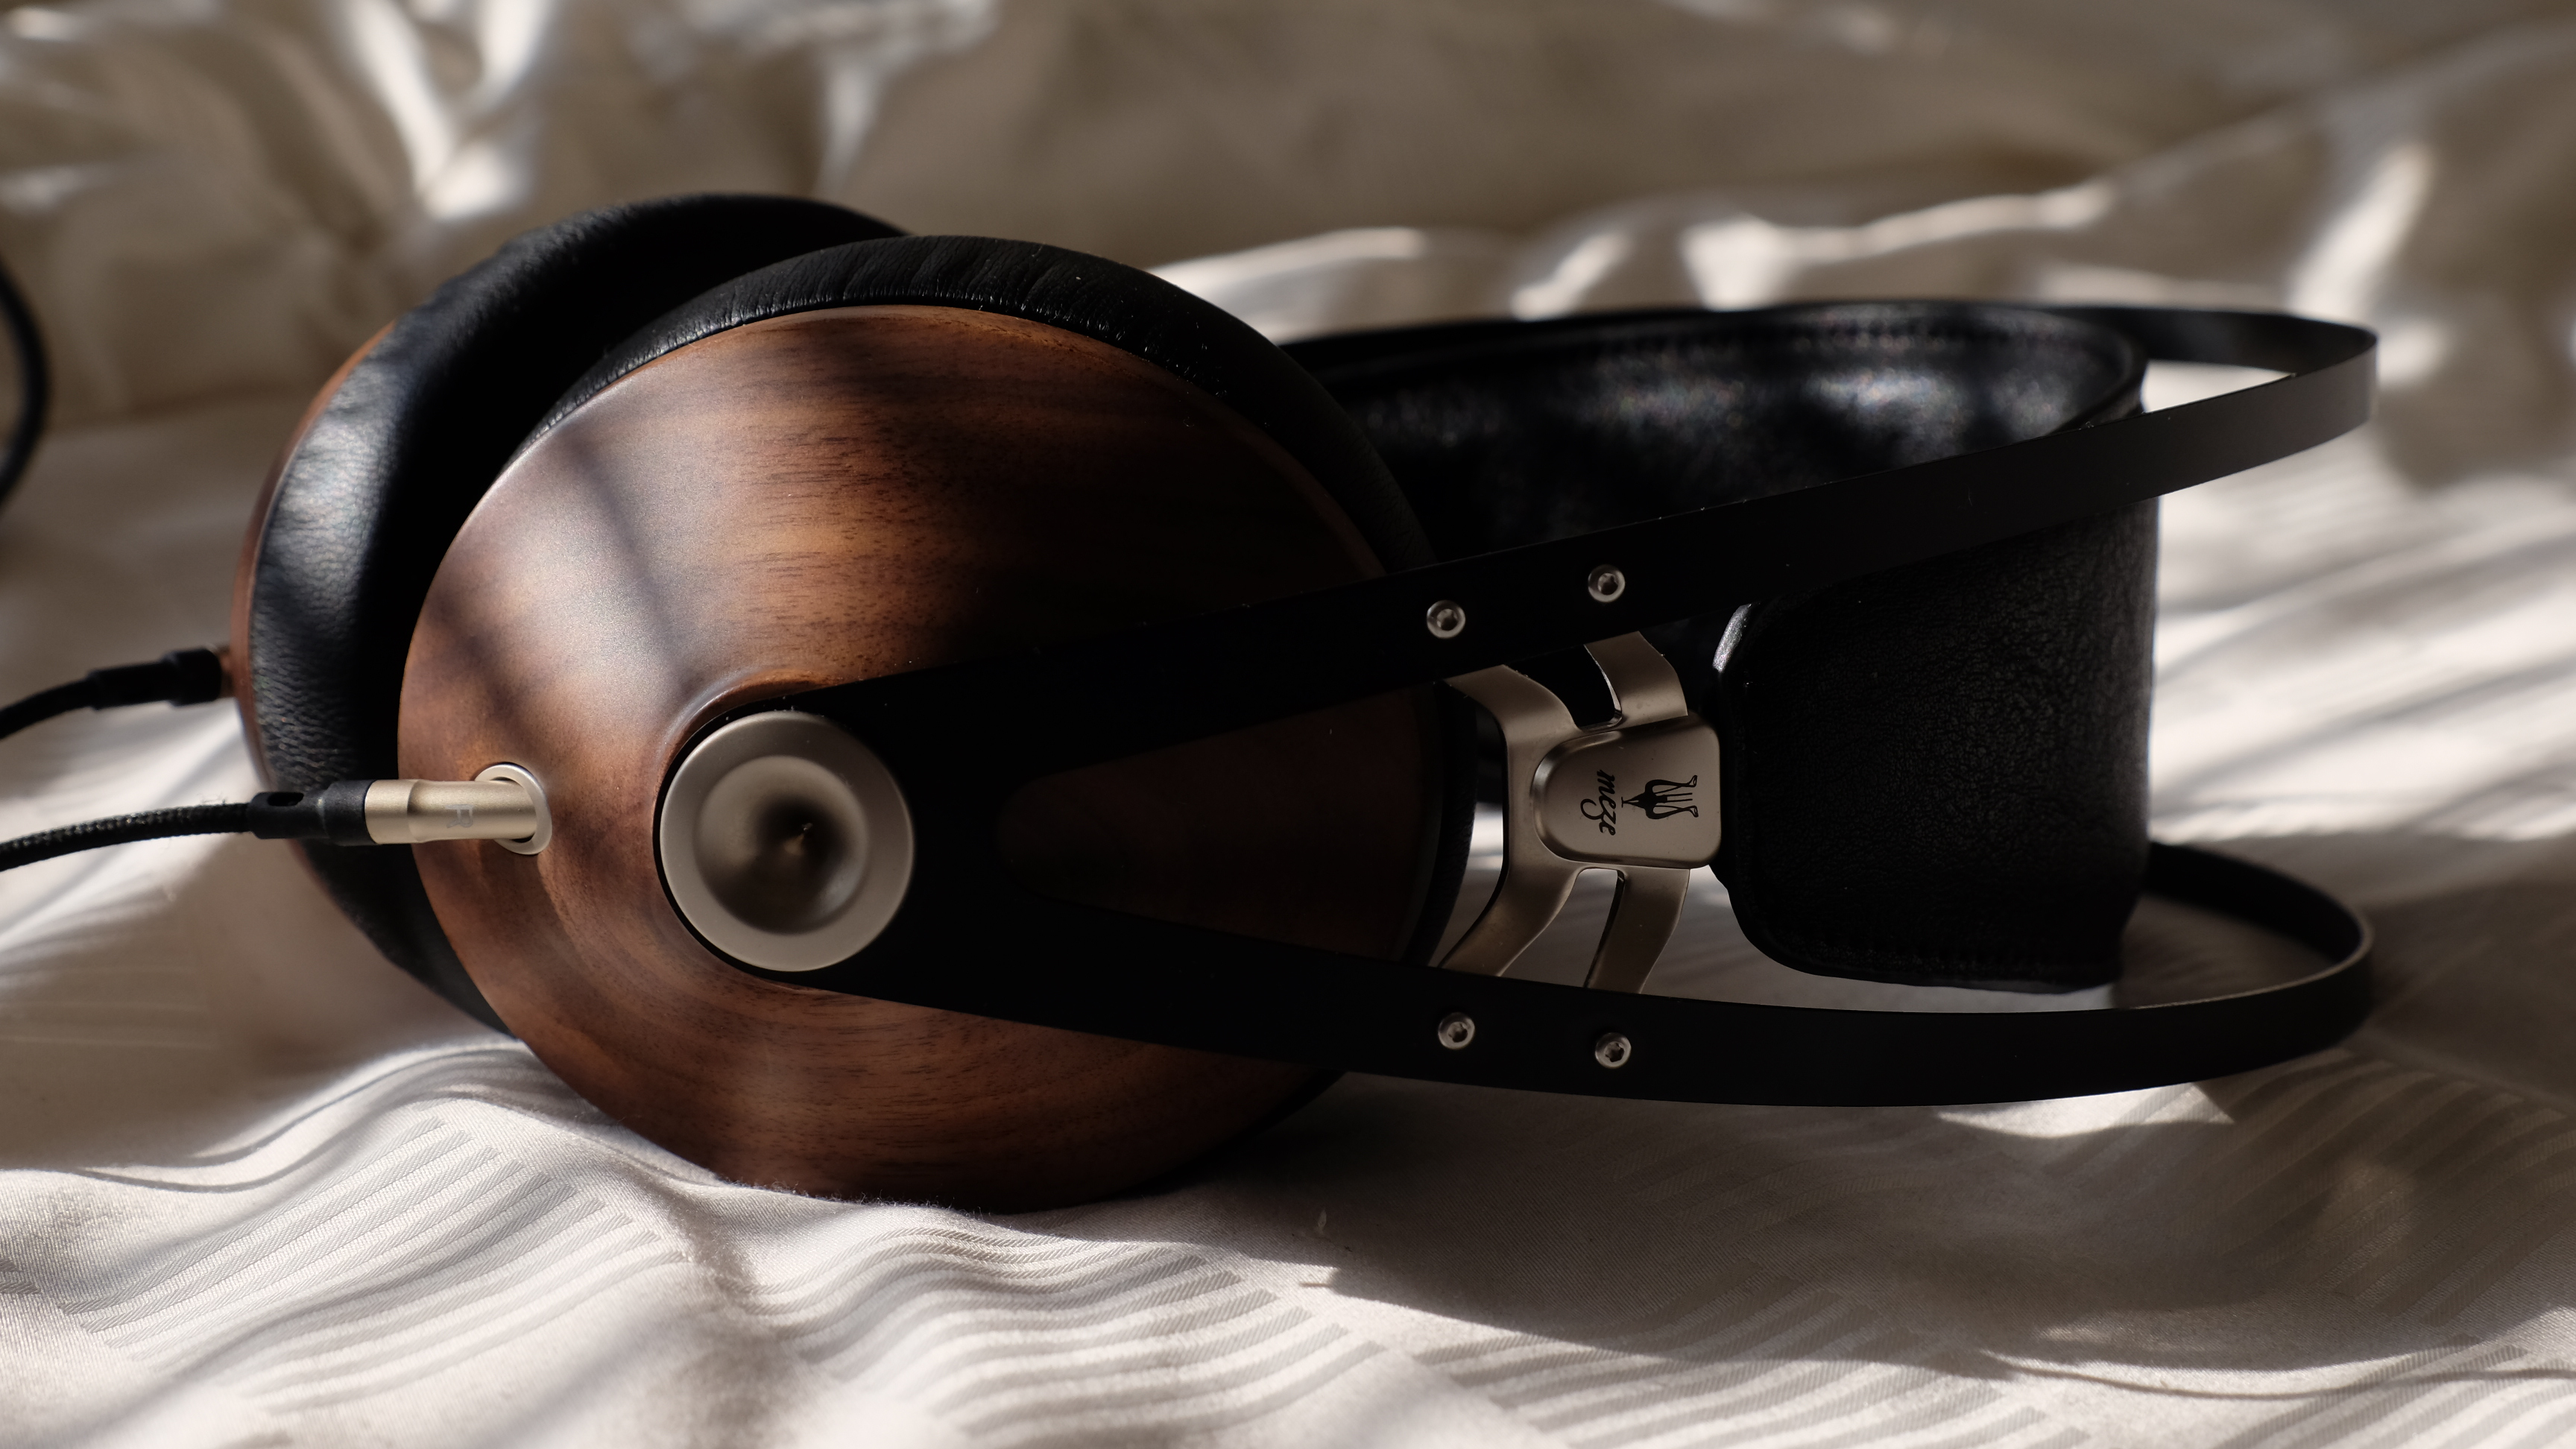 Meze 99 Classics Headphone Review – Quest to Find a Portable Over-Ear Headphone